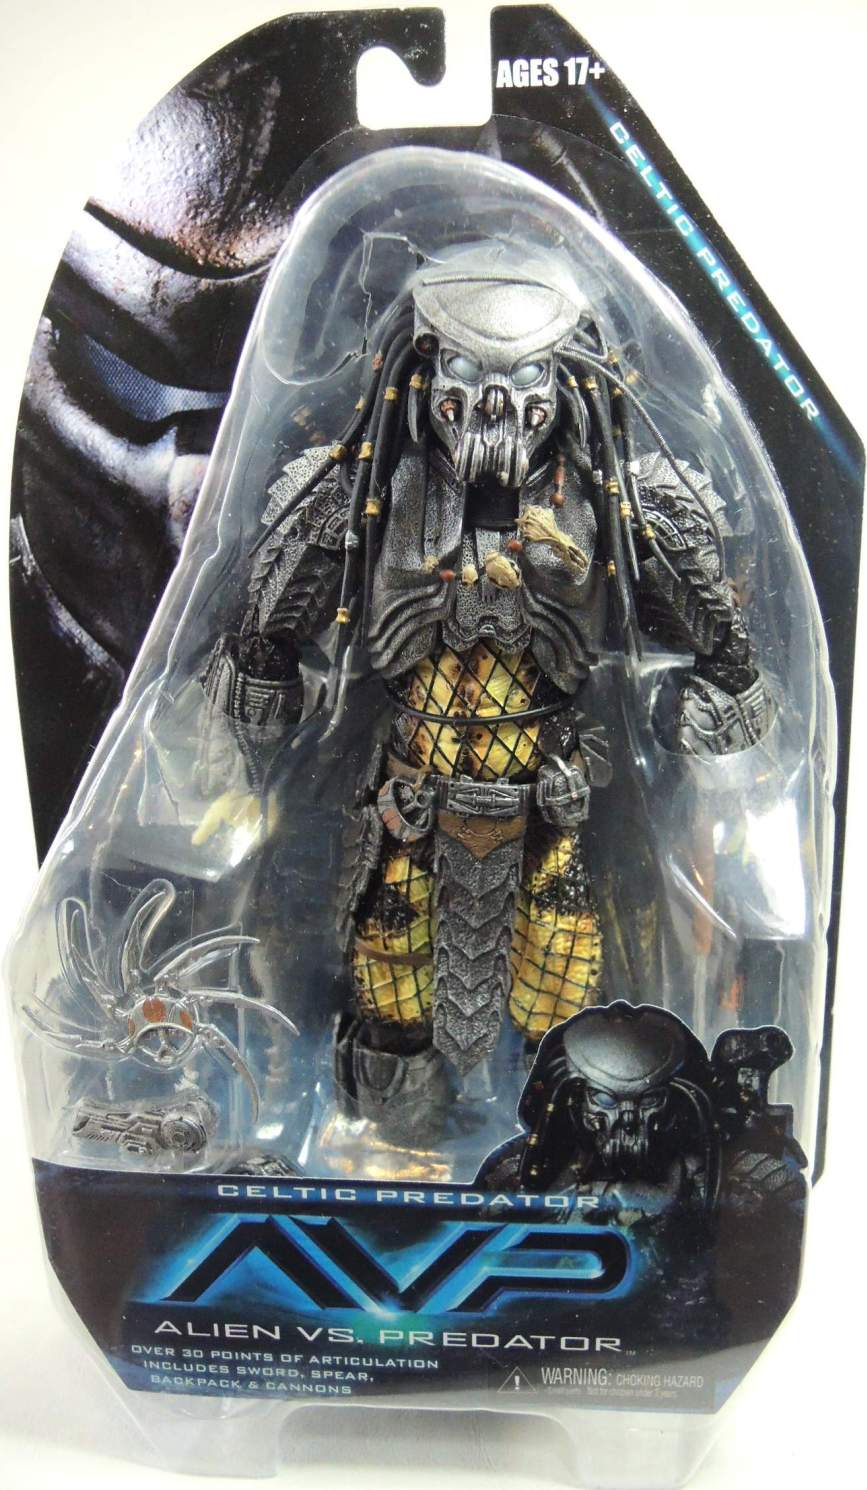 NECA Predator Series 14 Celtic Predator NECA, Predators, Action Figures, 2015, scifi, movie